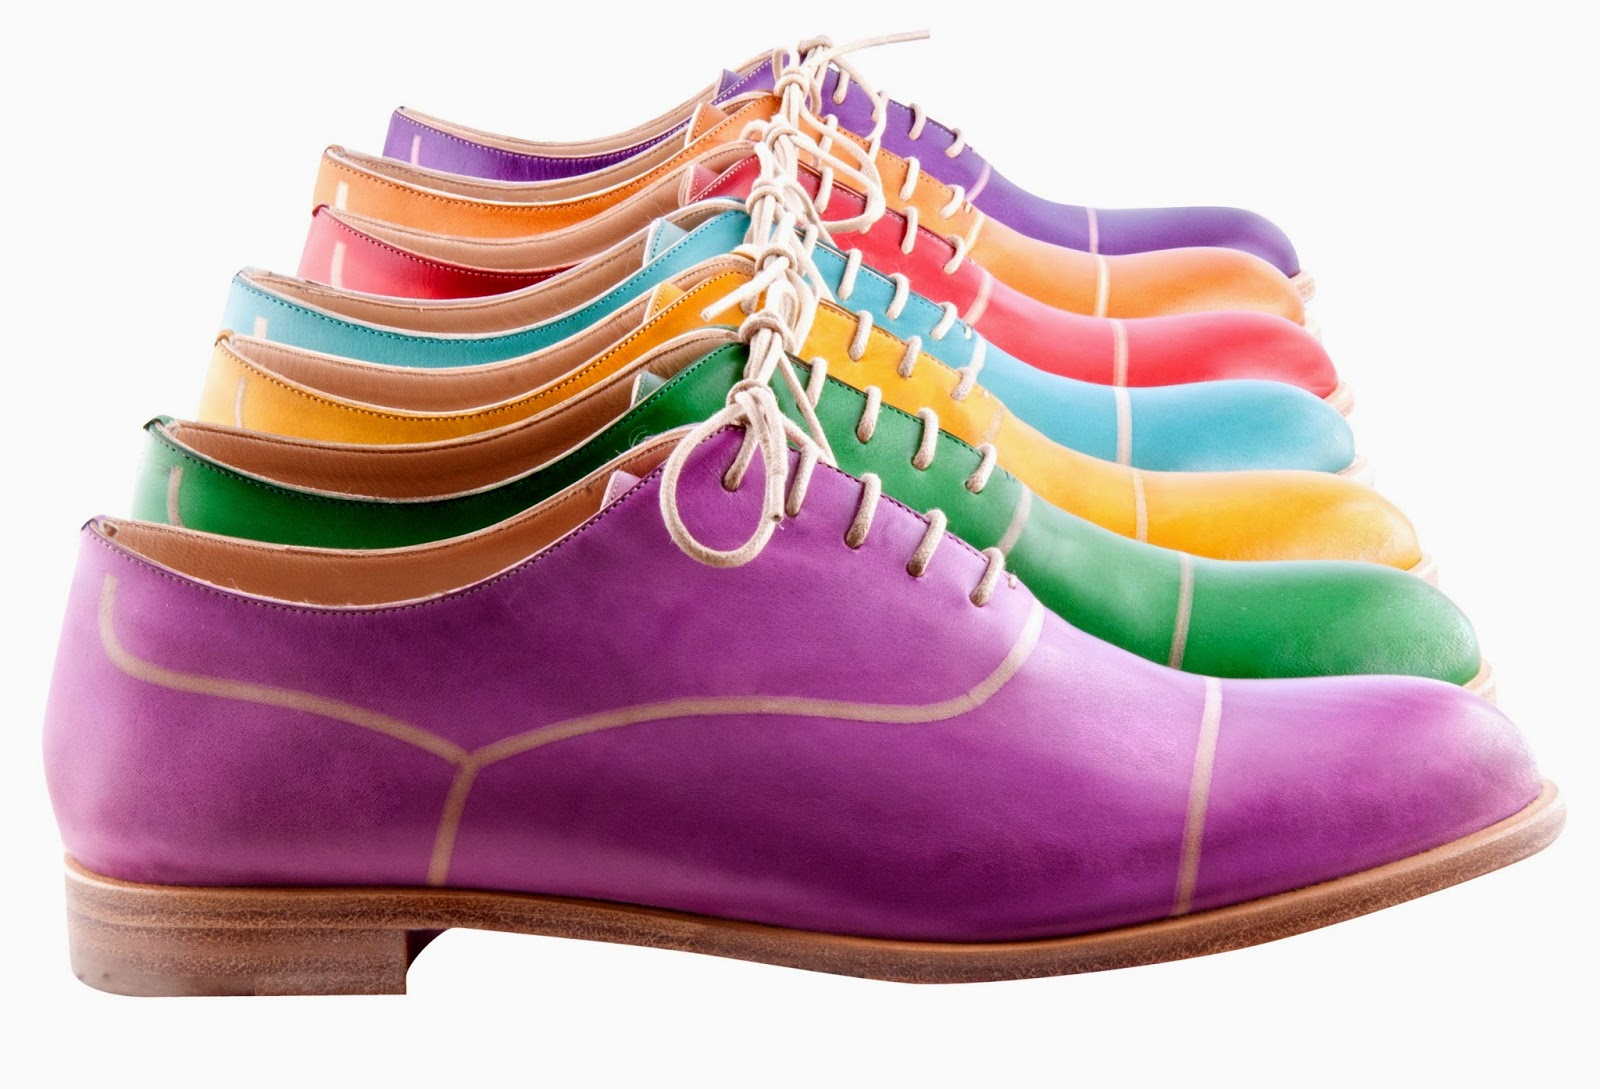 Rock Candy Shoes by Fratelli Rossetti Italy